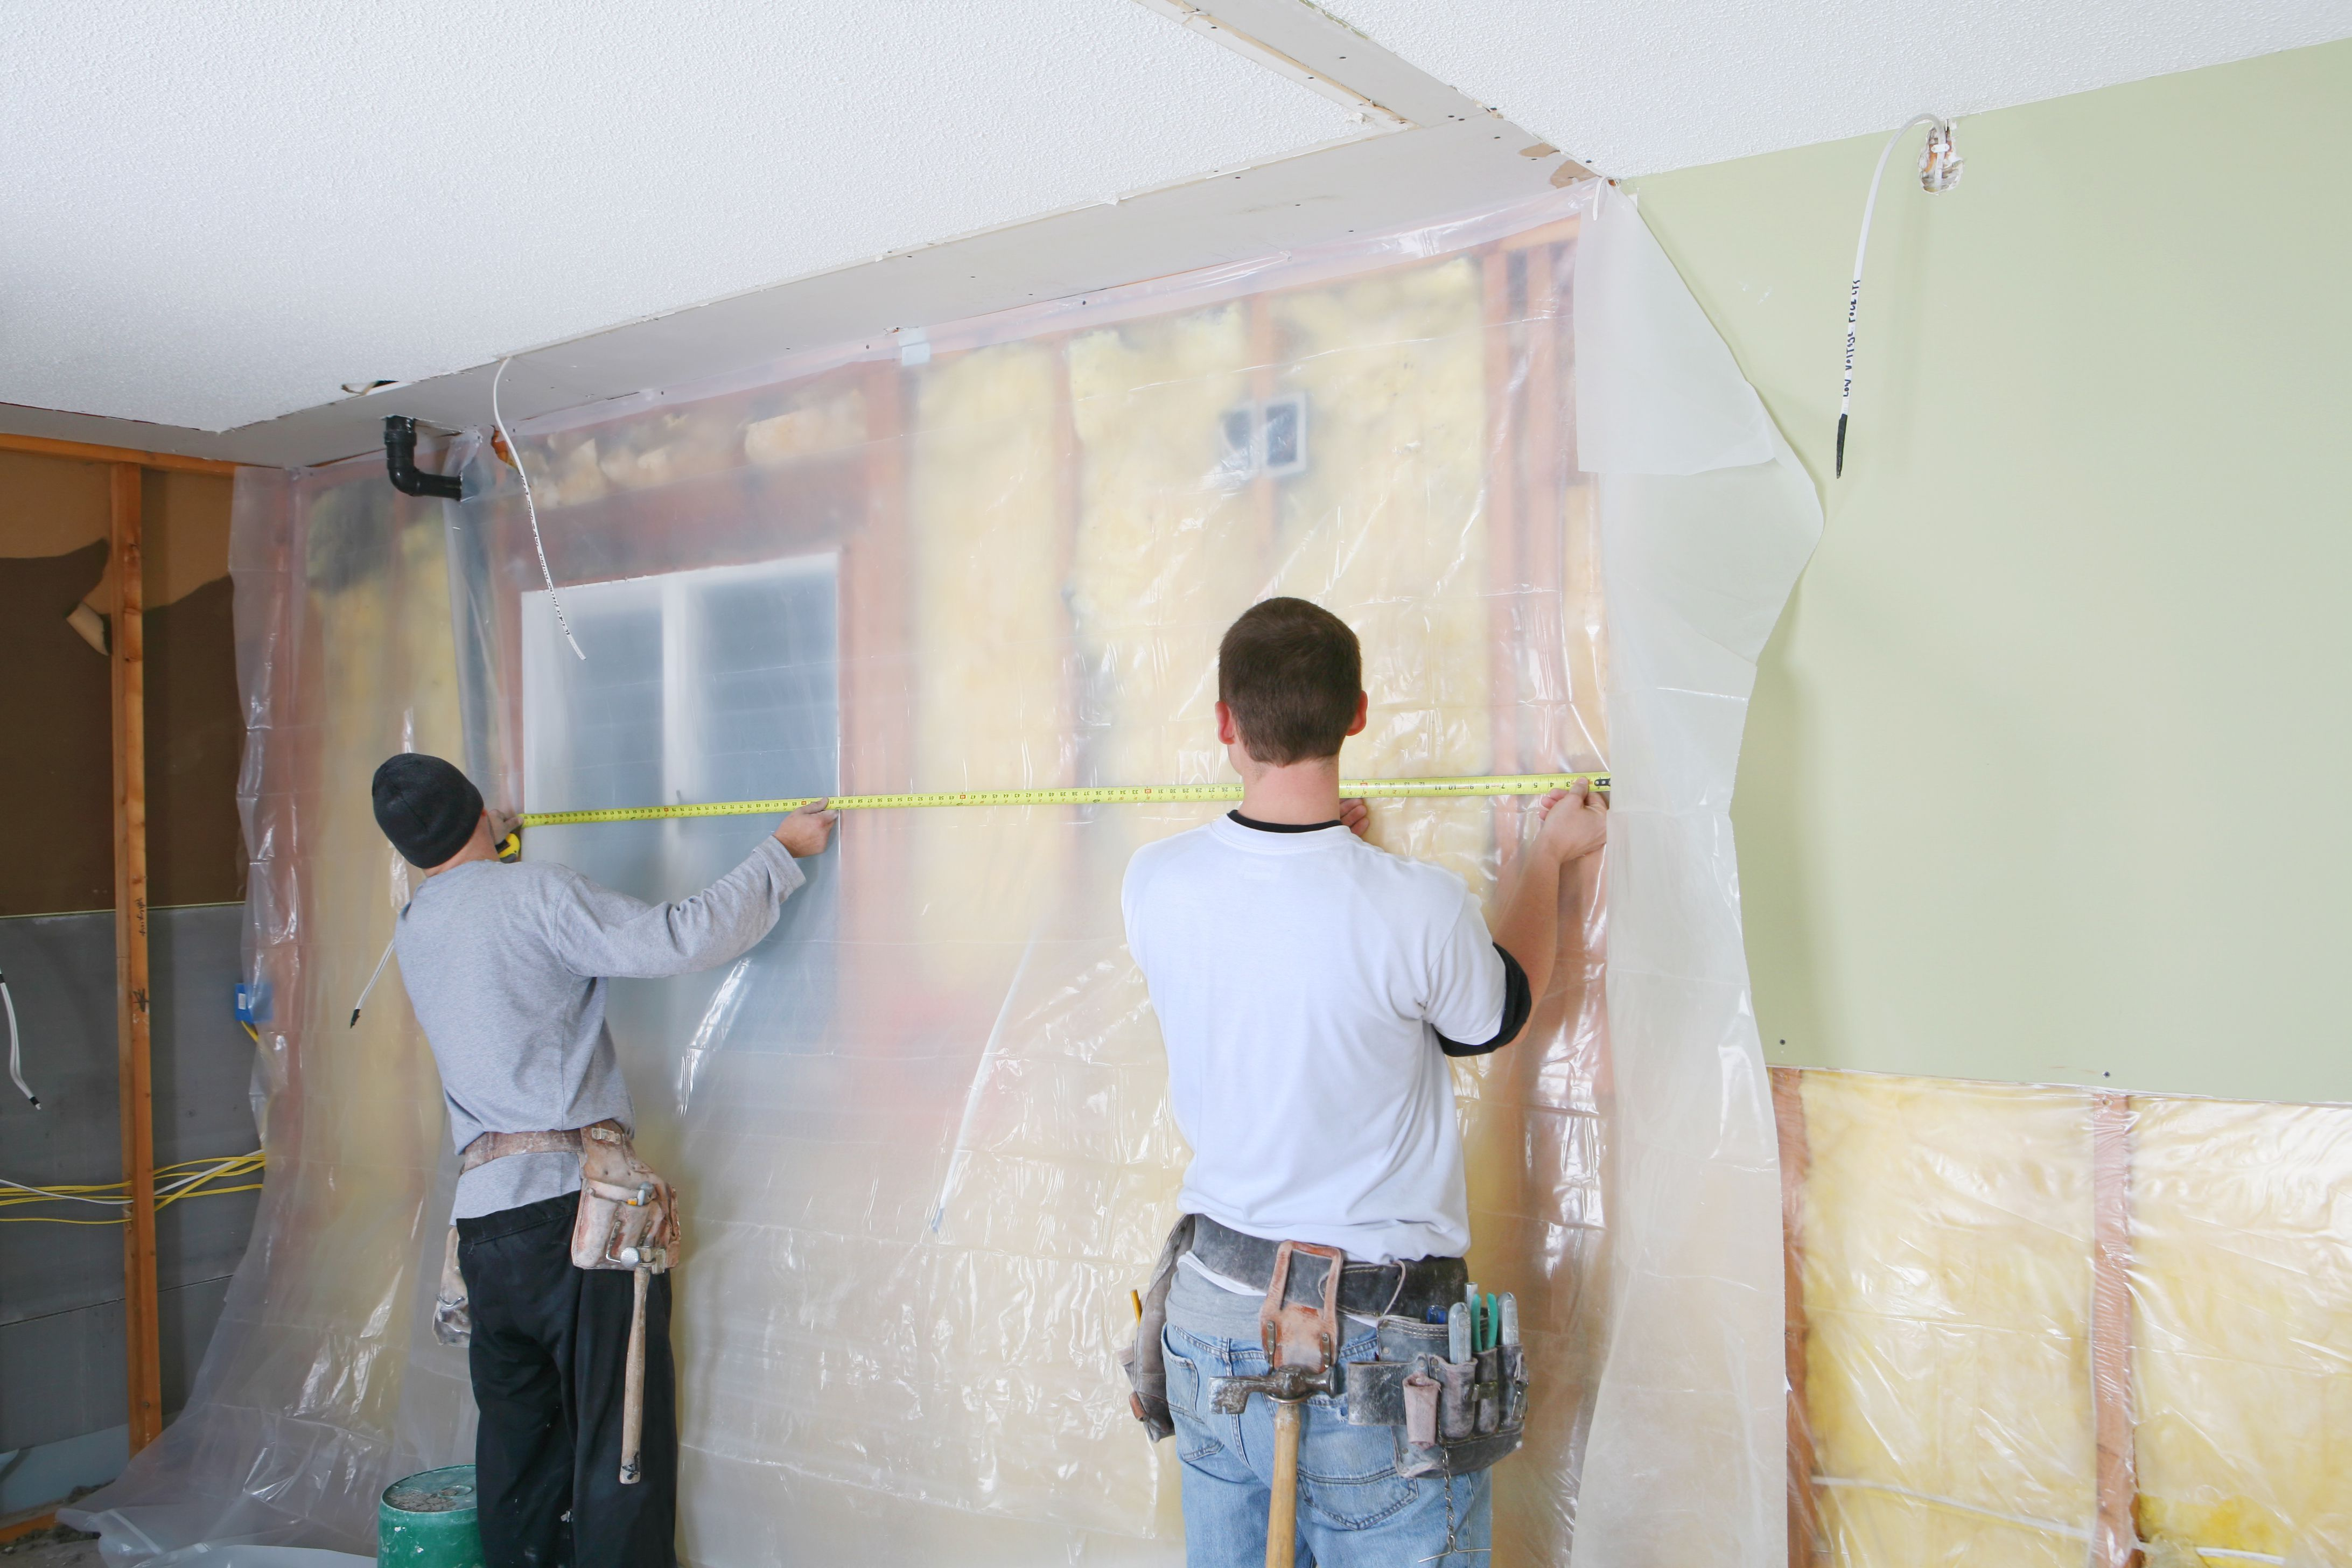 Learn Expert Tips For Hanging Drywall Like A Pro Hanging Drywall Repair Ceilings Drywall Ceiling